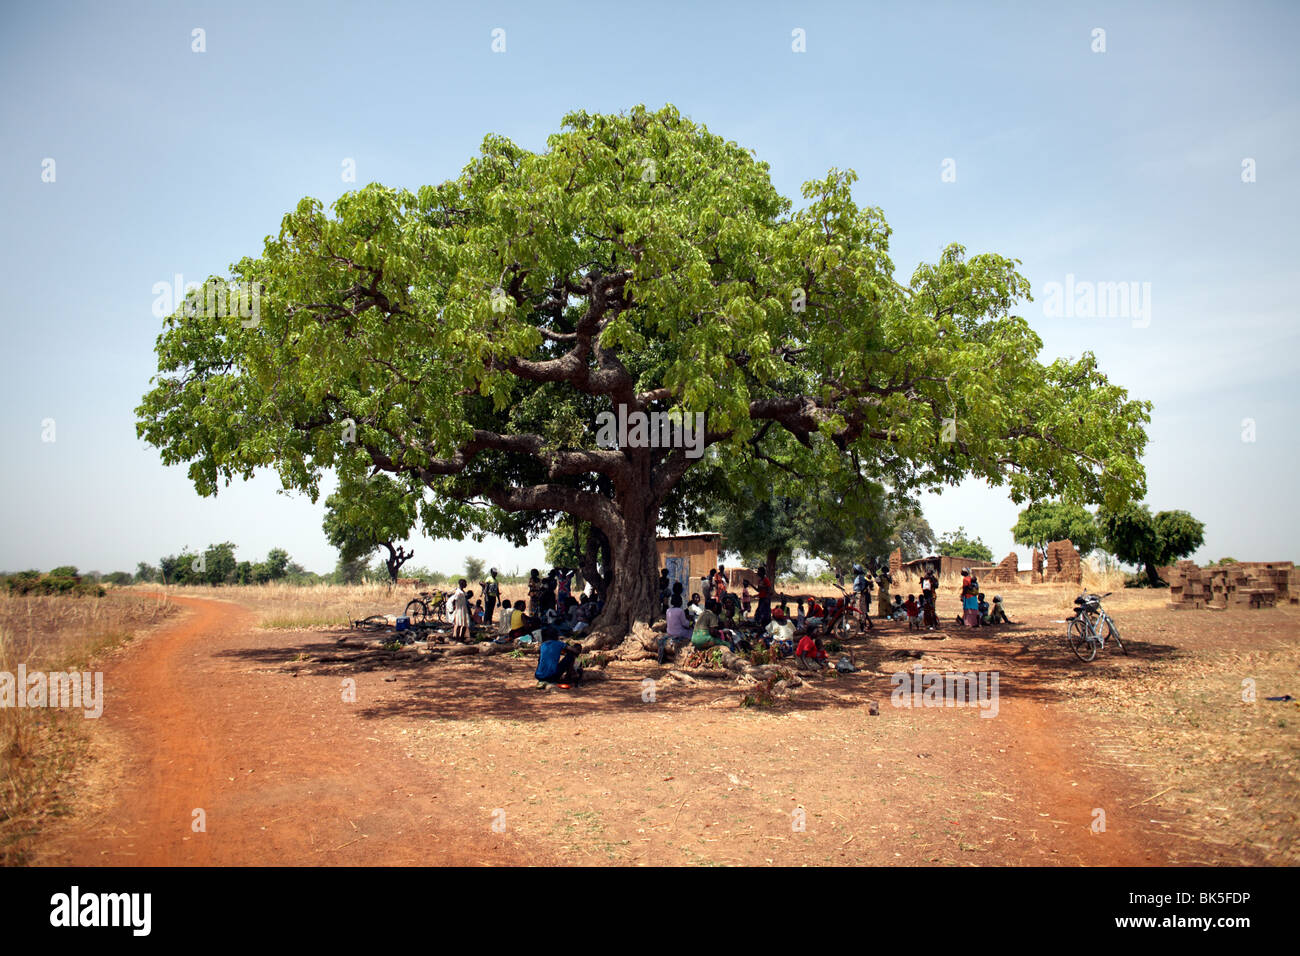 Villagers gather under a large tree in Nandom, Ghana, West Africa, Africa - Stock Image